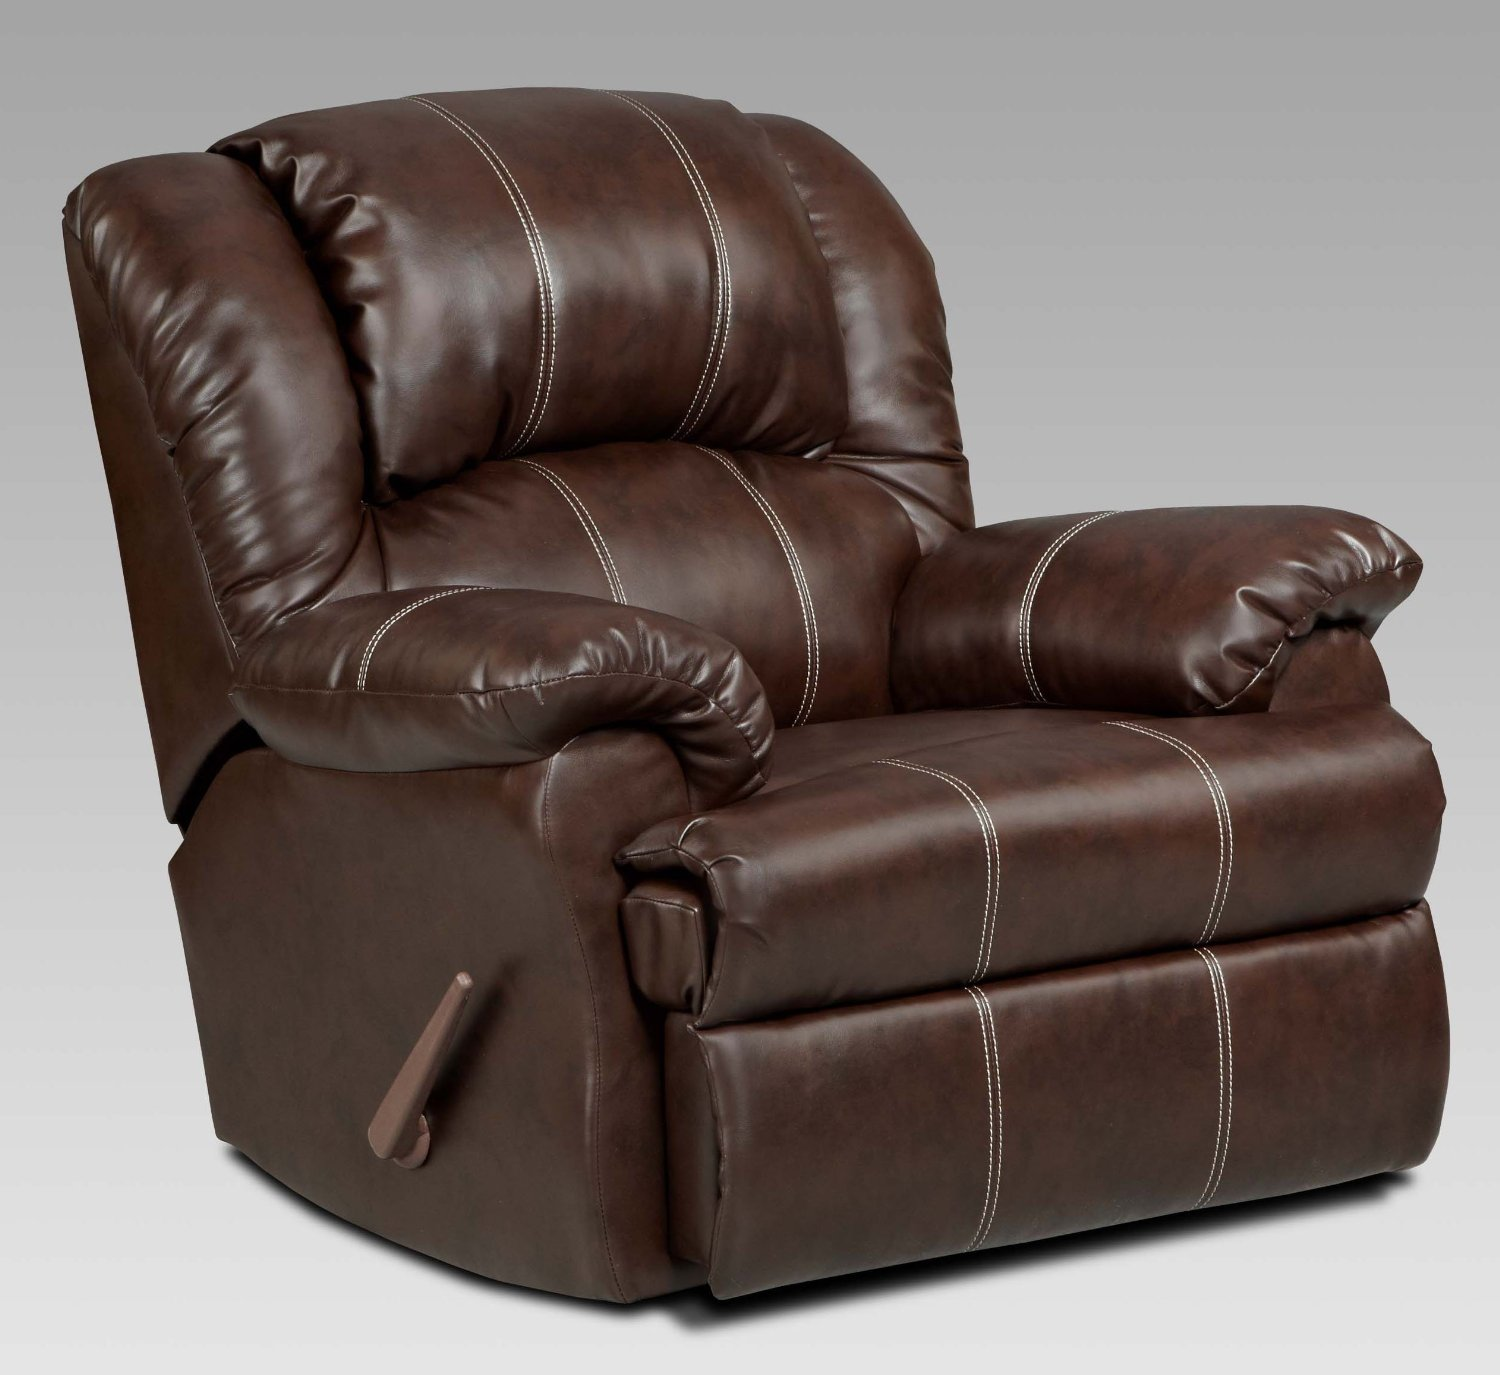 Roundhill Furniture Brandan Bonded Leather Dual Rocker Recliner Chair, Oversize, Brown1